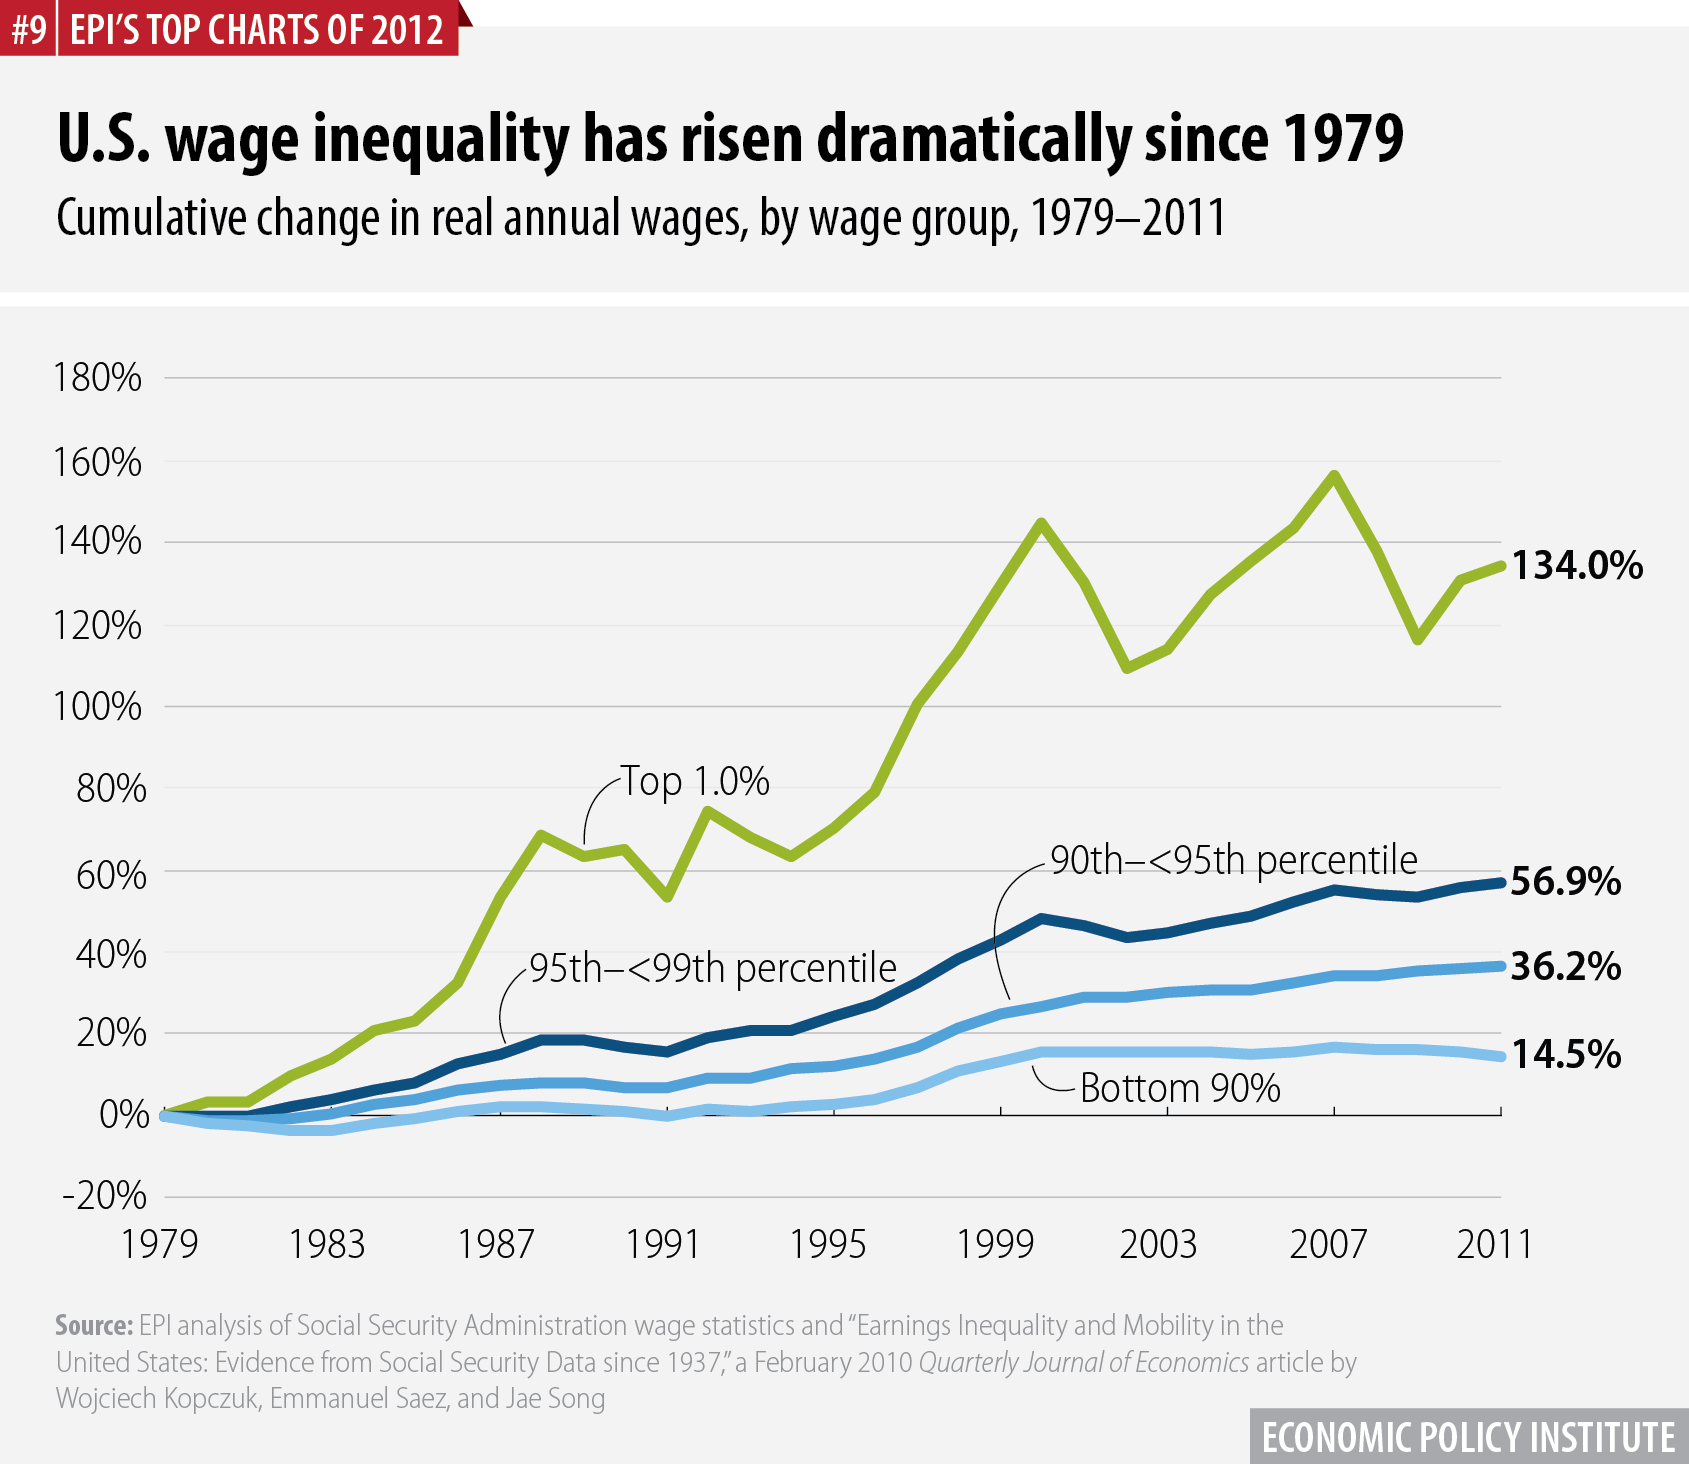 U.S. wage inequality has risen dramatically since 1979 | Cumulative change in real annual wages, by wage group, 1979–2011